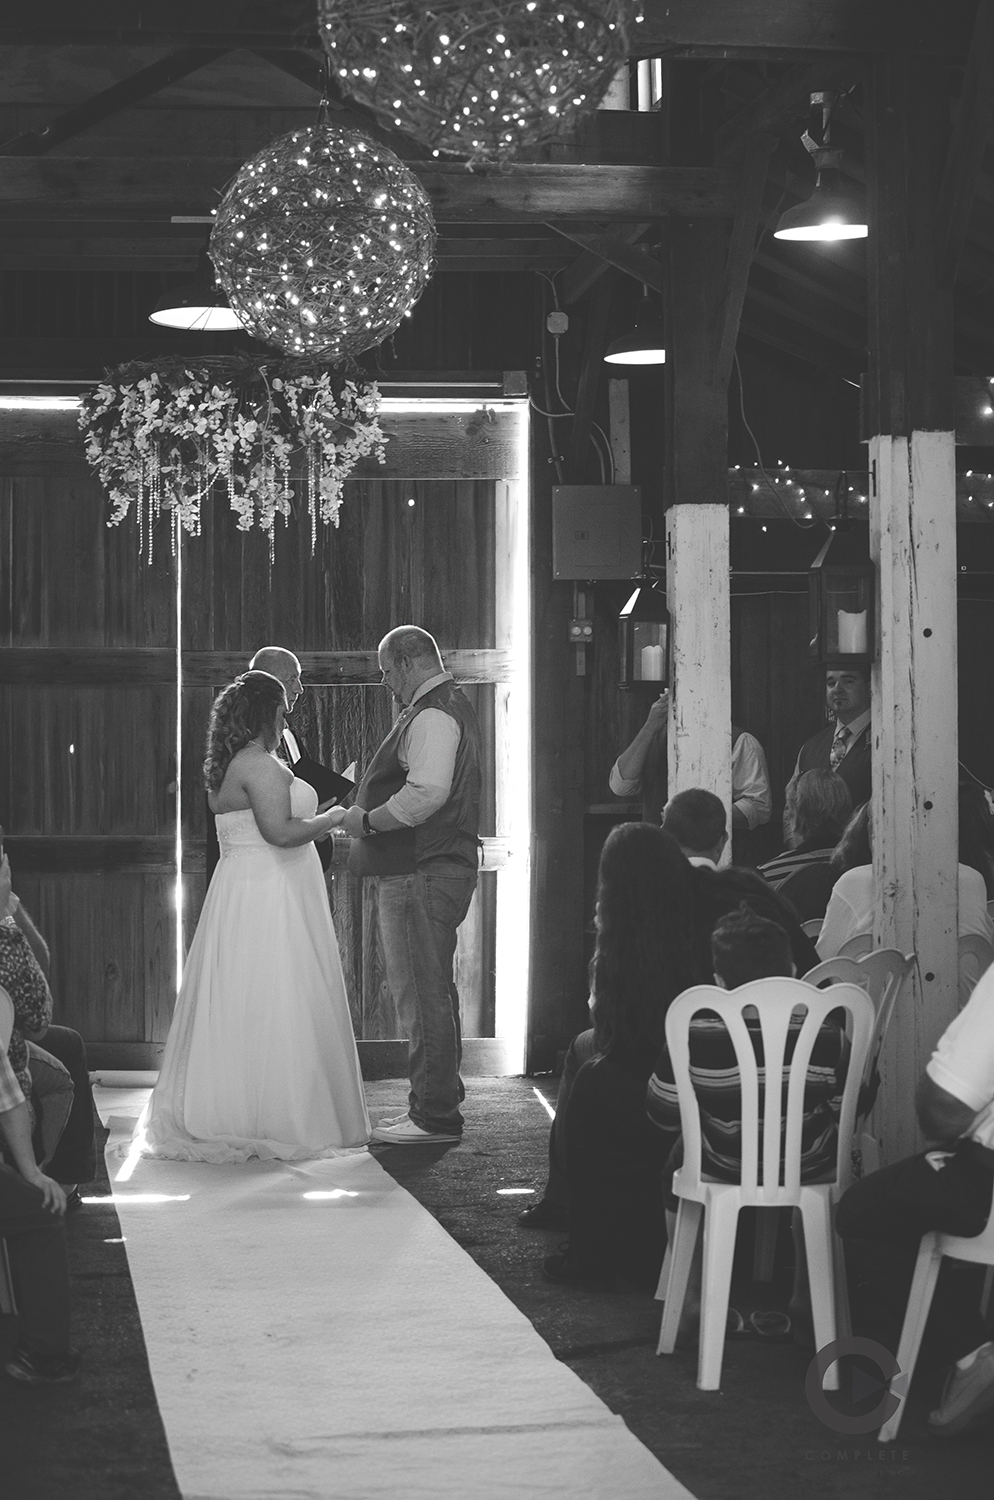 Inside the barn, a chandelier hung above them as they said I Do.